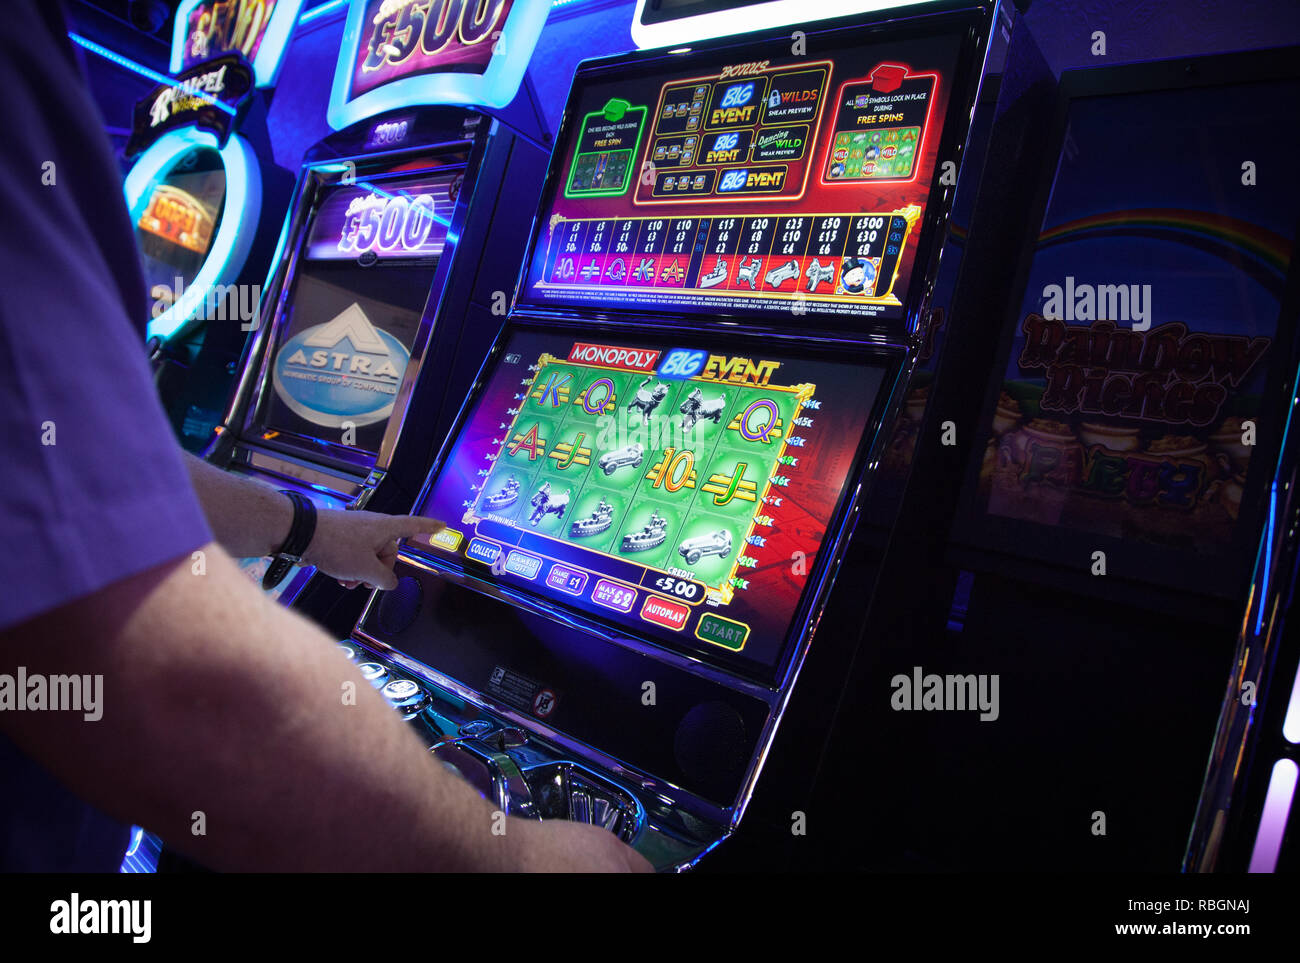 Fixed odds betting machines in motion html web development trifecta betting